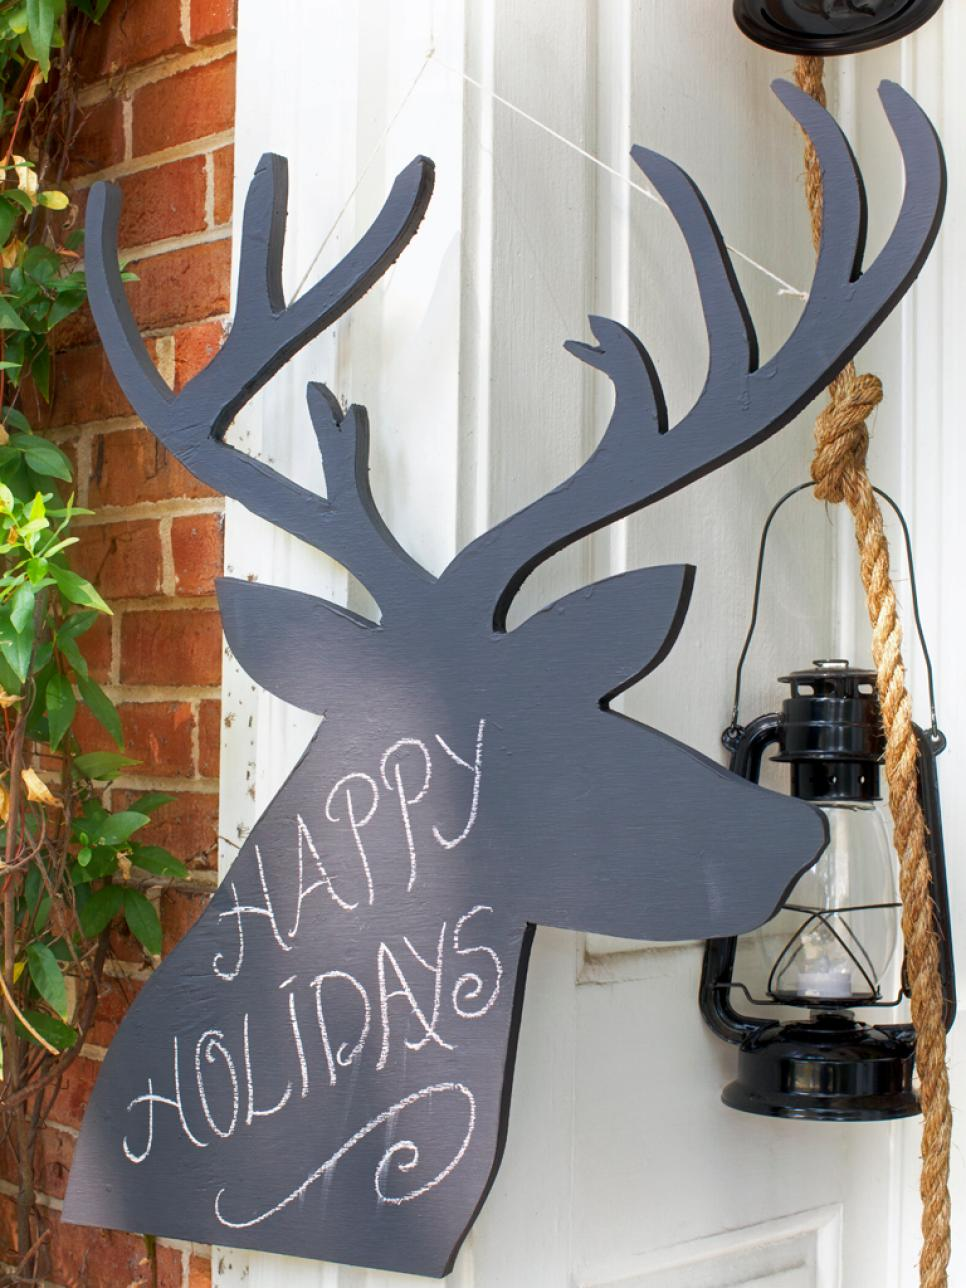 Best Outdoor Christmas Decorations (11)